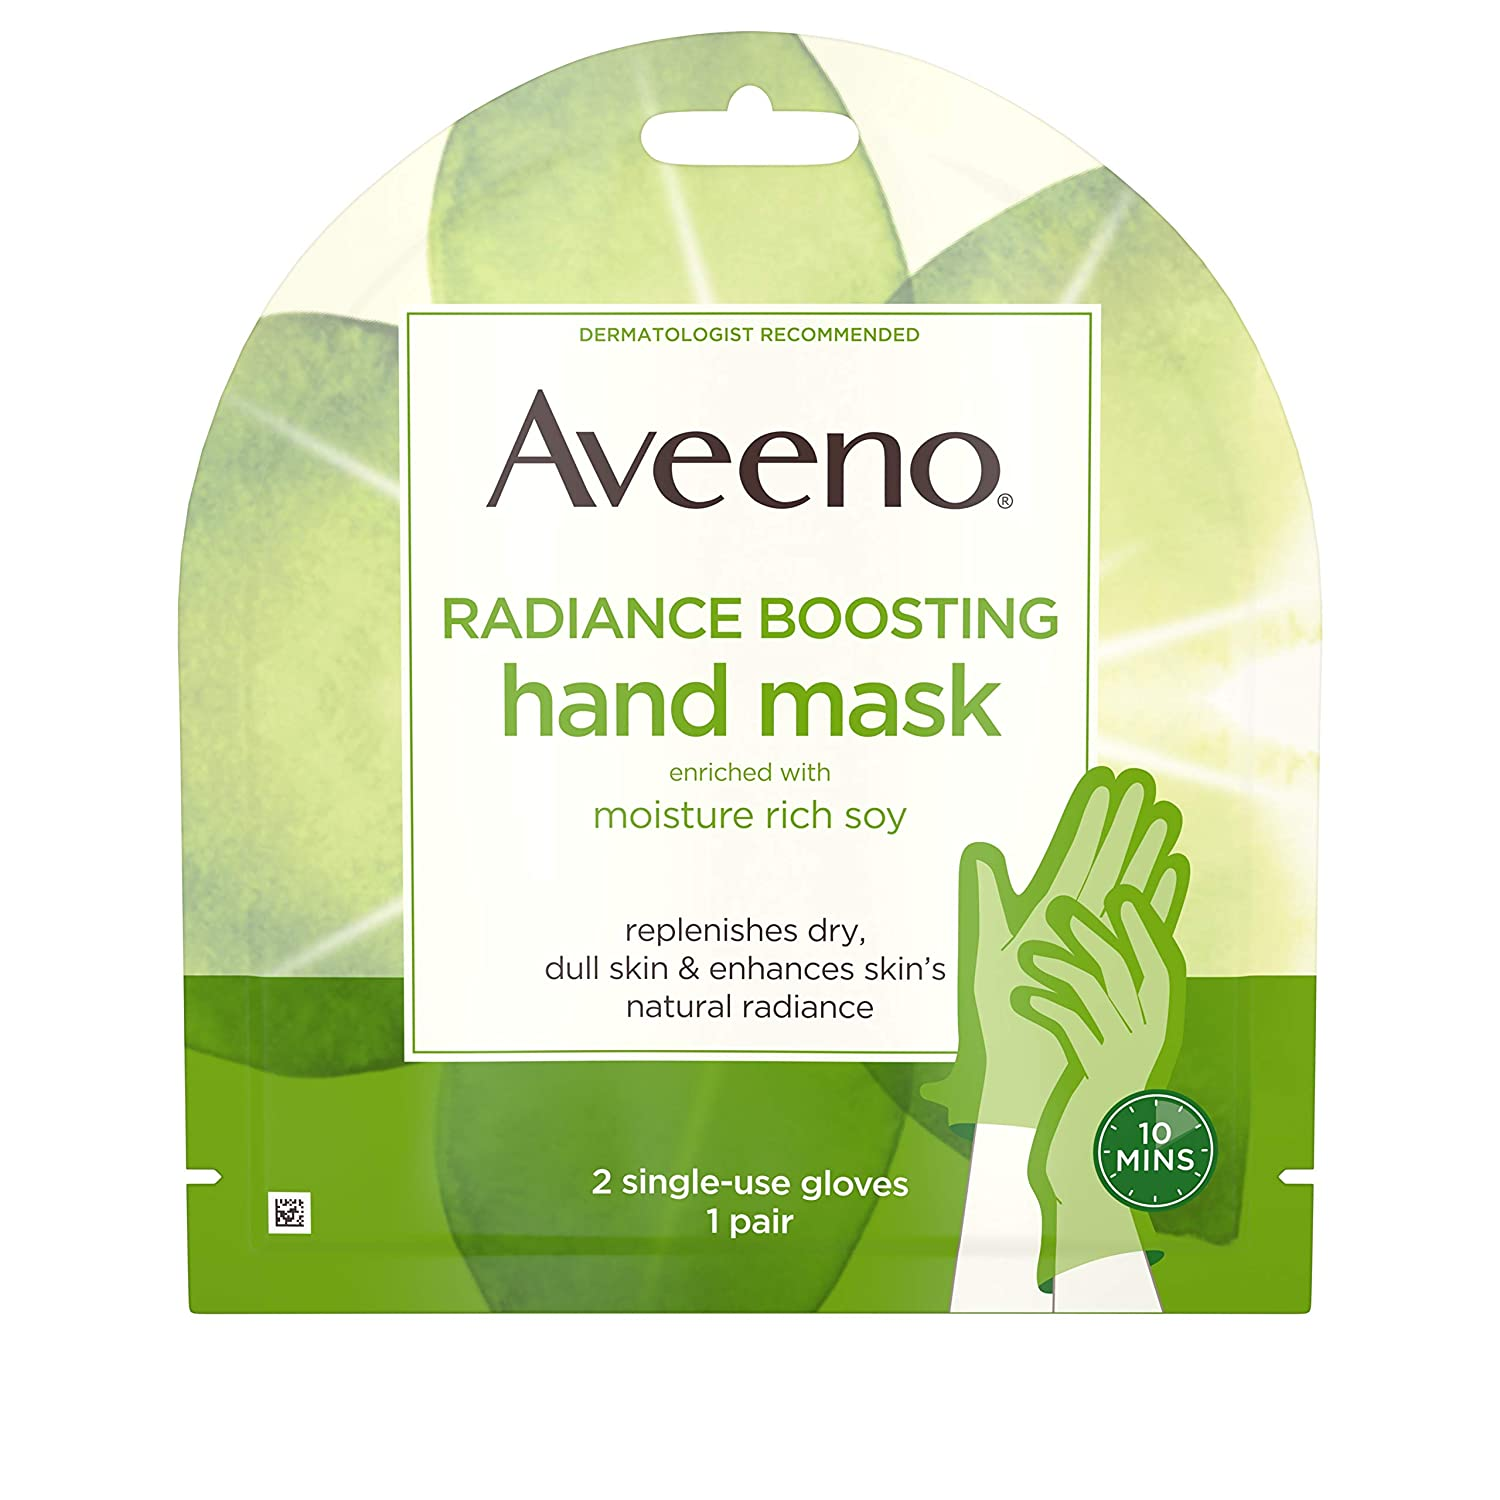 Aveeno Radiance Boosting Hand Mask with Moisture Rich Soy, Moisturizing Hand Gloves to Replenish Dry Dull Skin, Paraben-Free, 1 Pair of Single-use Gloves (Pack of 5)